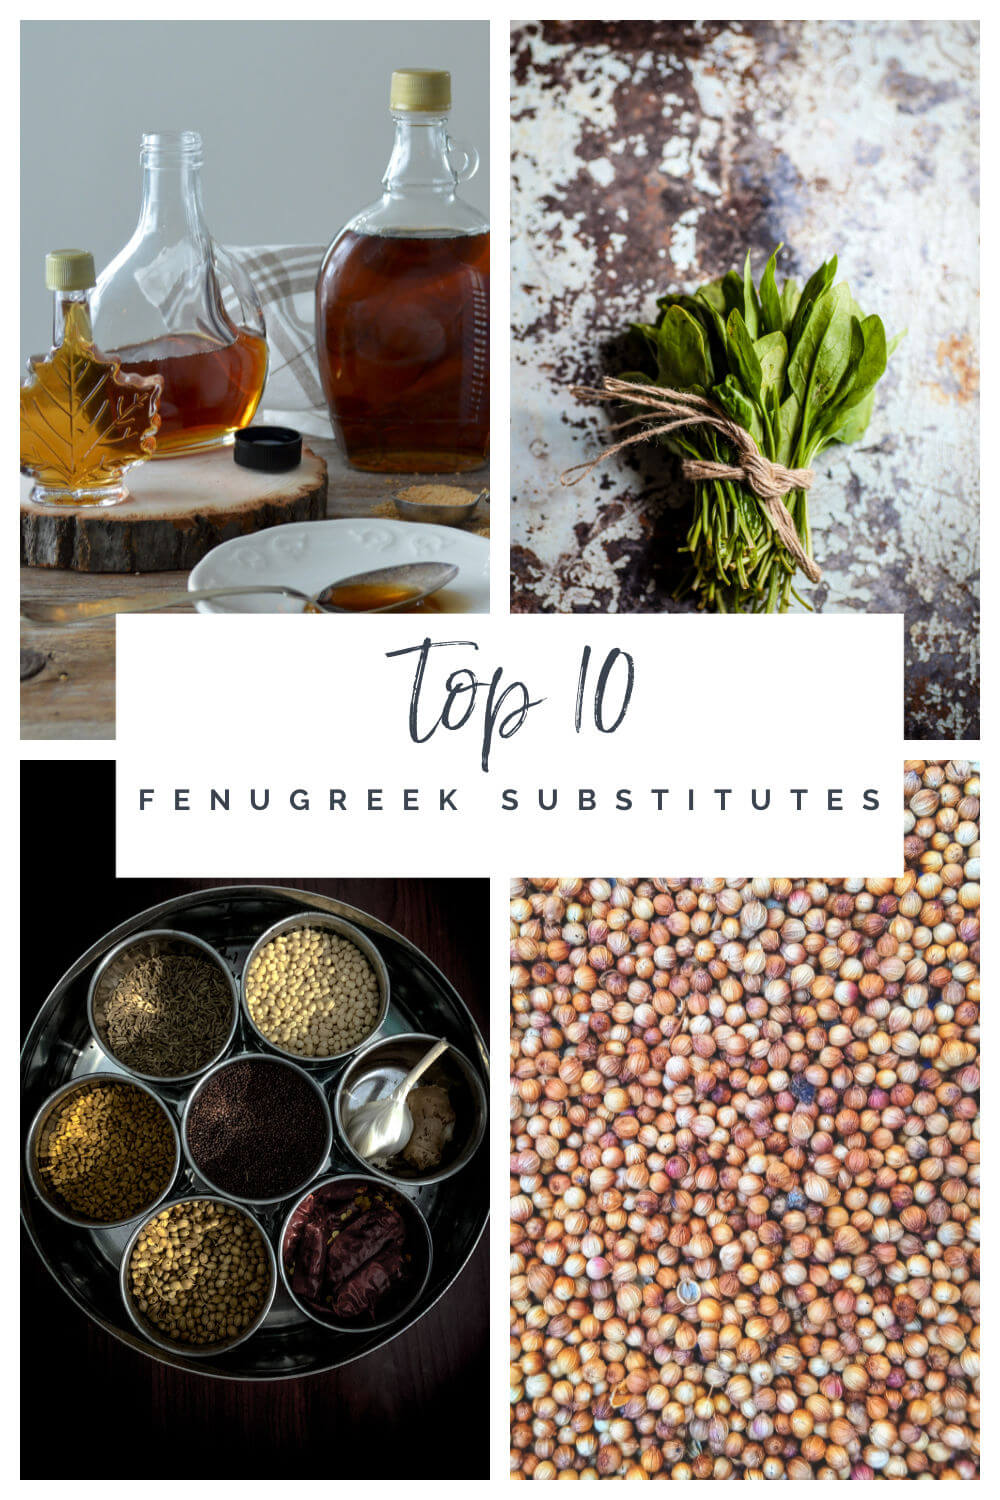 A collage of four ingredients that are the best fenugreek substitutes in cooking: maple syrup, spinach, curry powder spices, and mustard seeds.